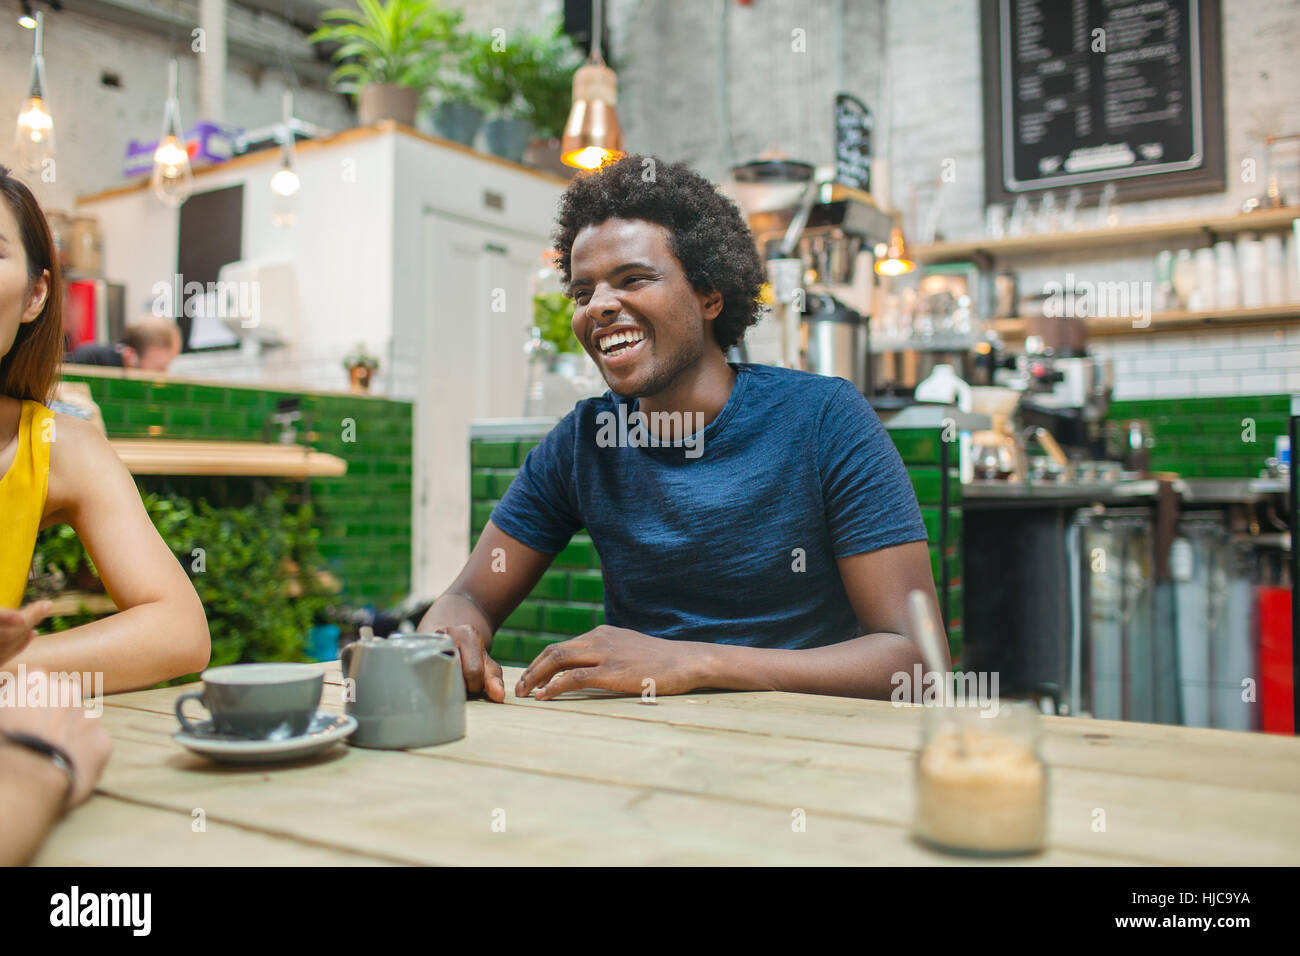 Femme et homme friends chatting together in cafe Photo Stock